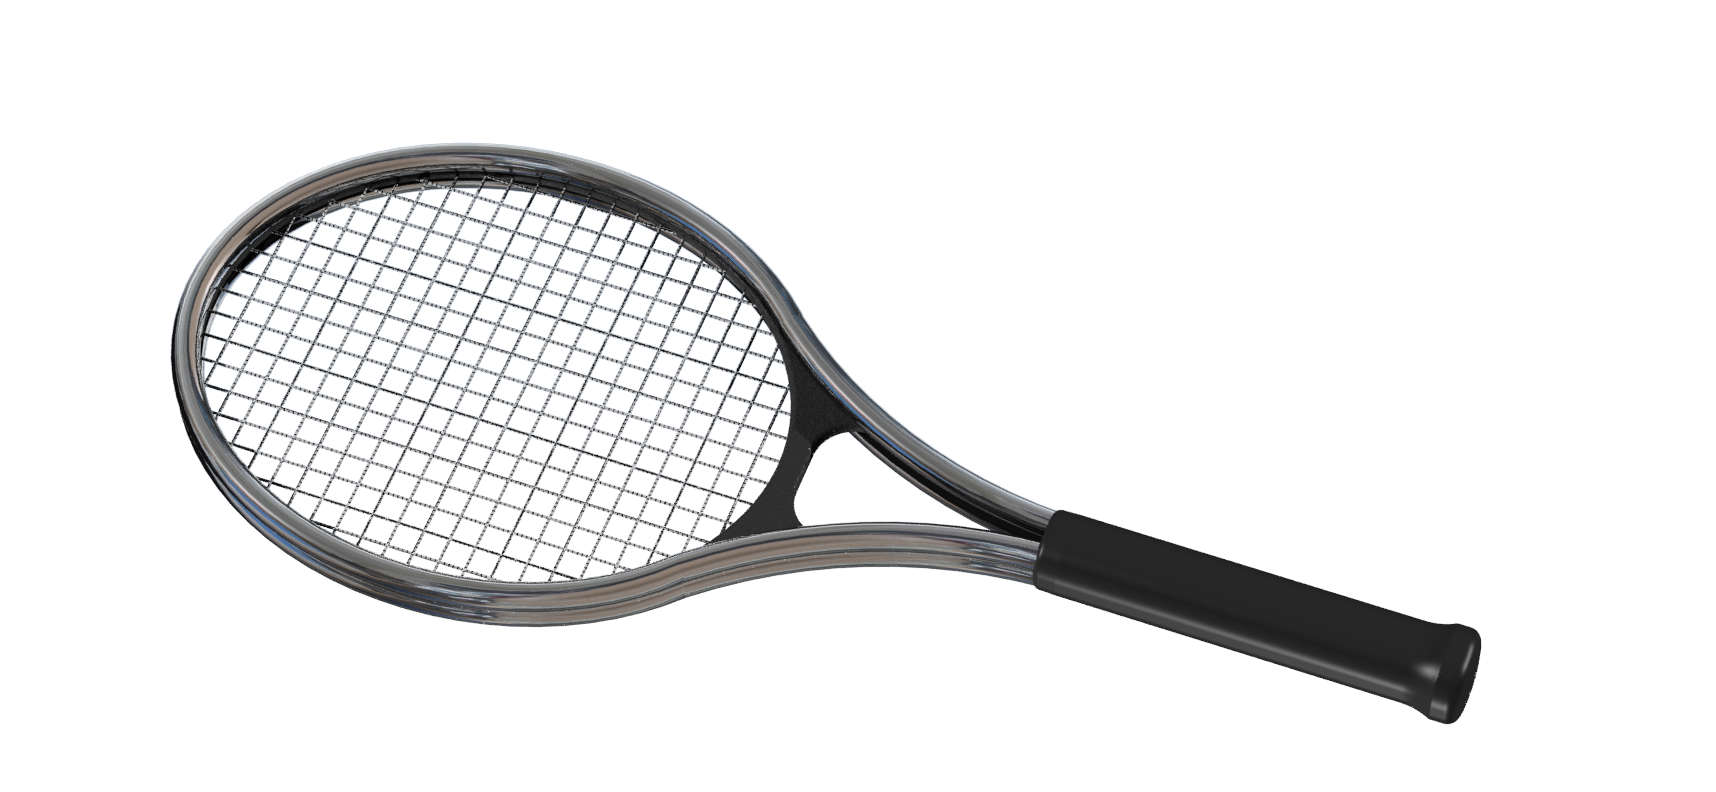 Clipart rocket tennis. Png images free download